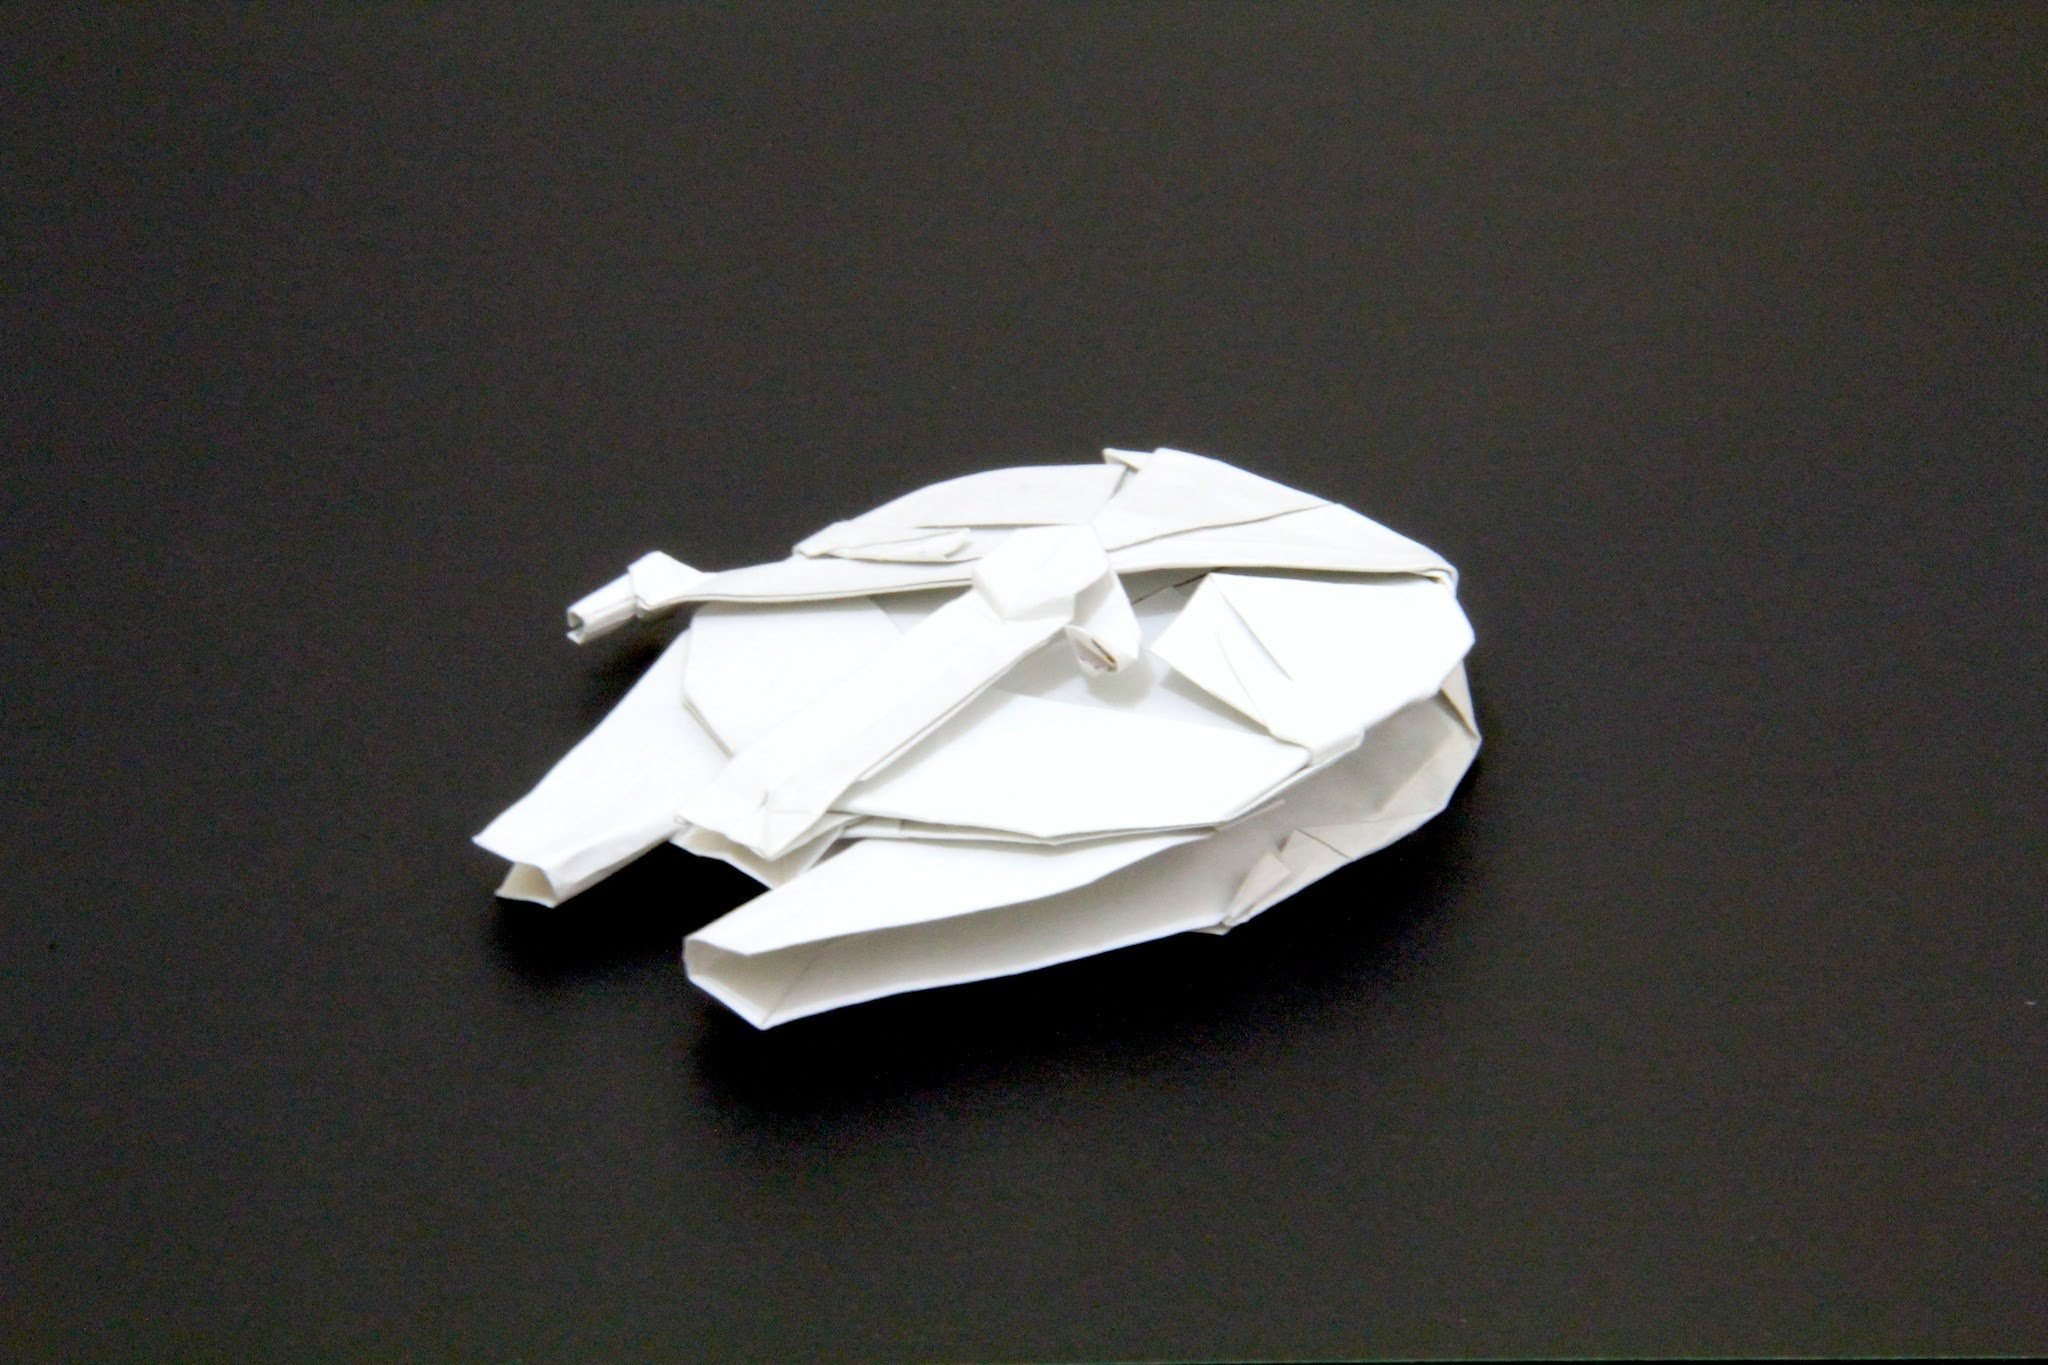 How to Make the Millennium Falcon in Origami [Infographic]